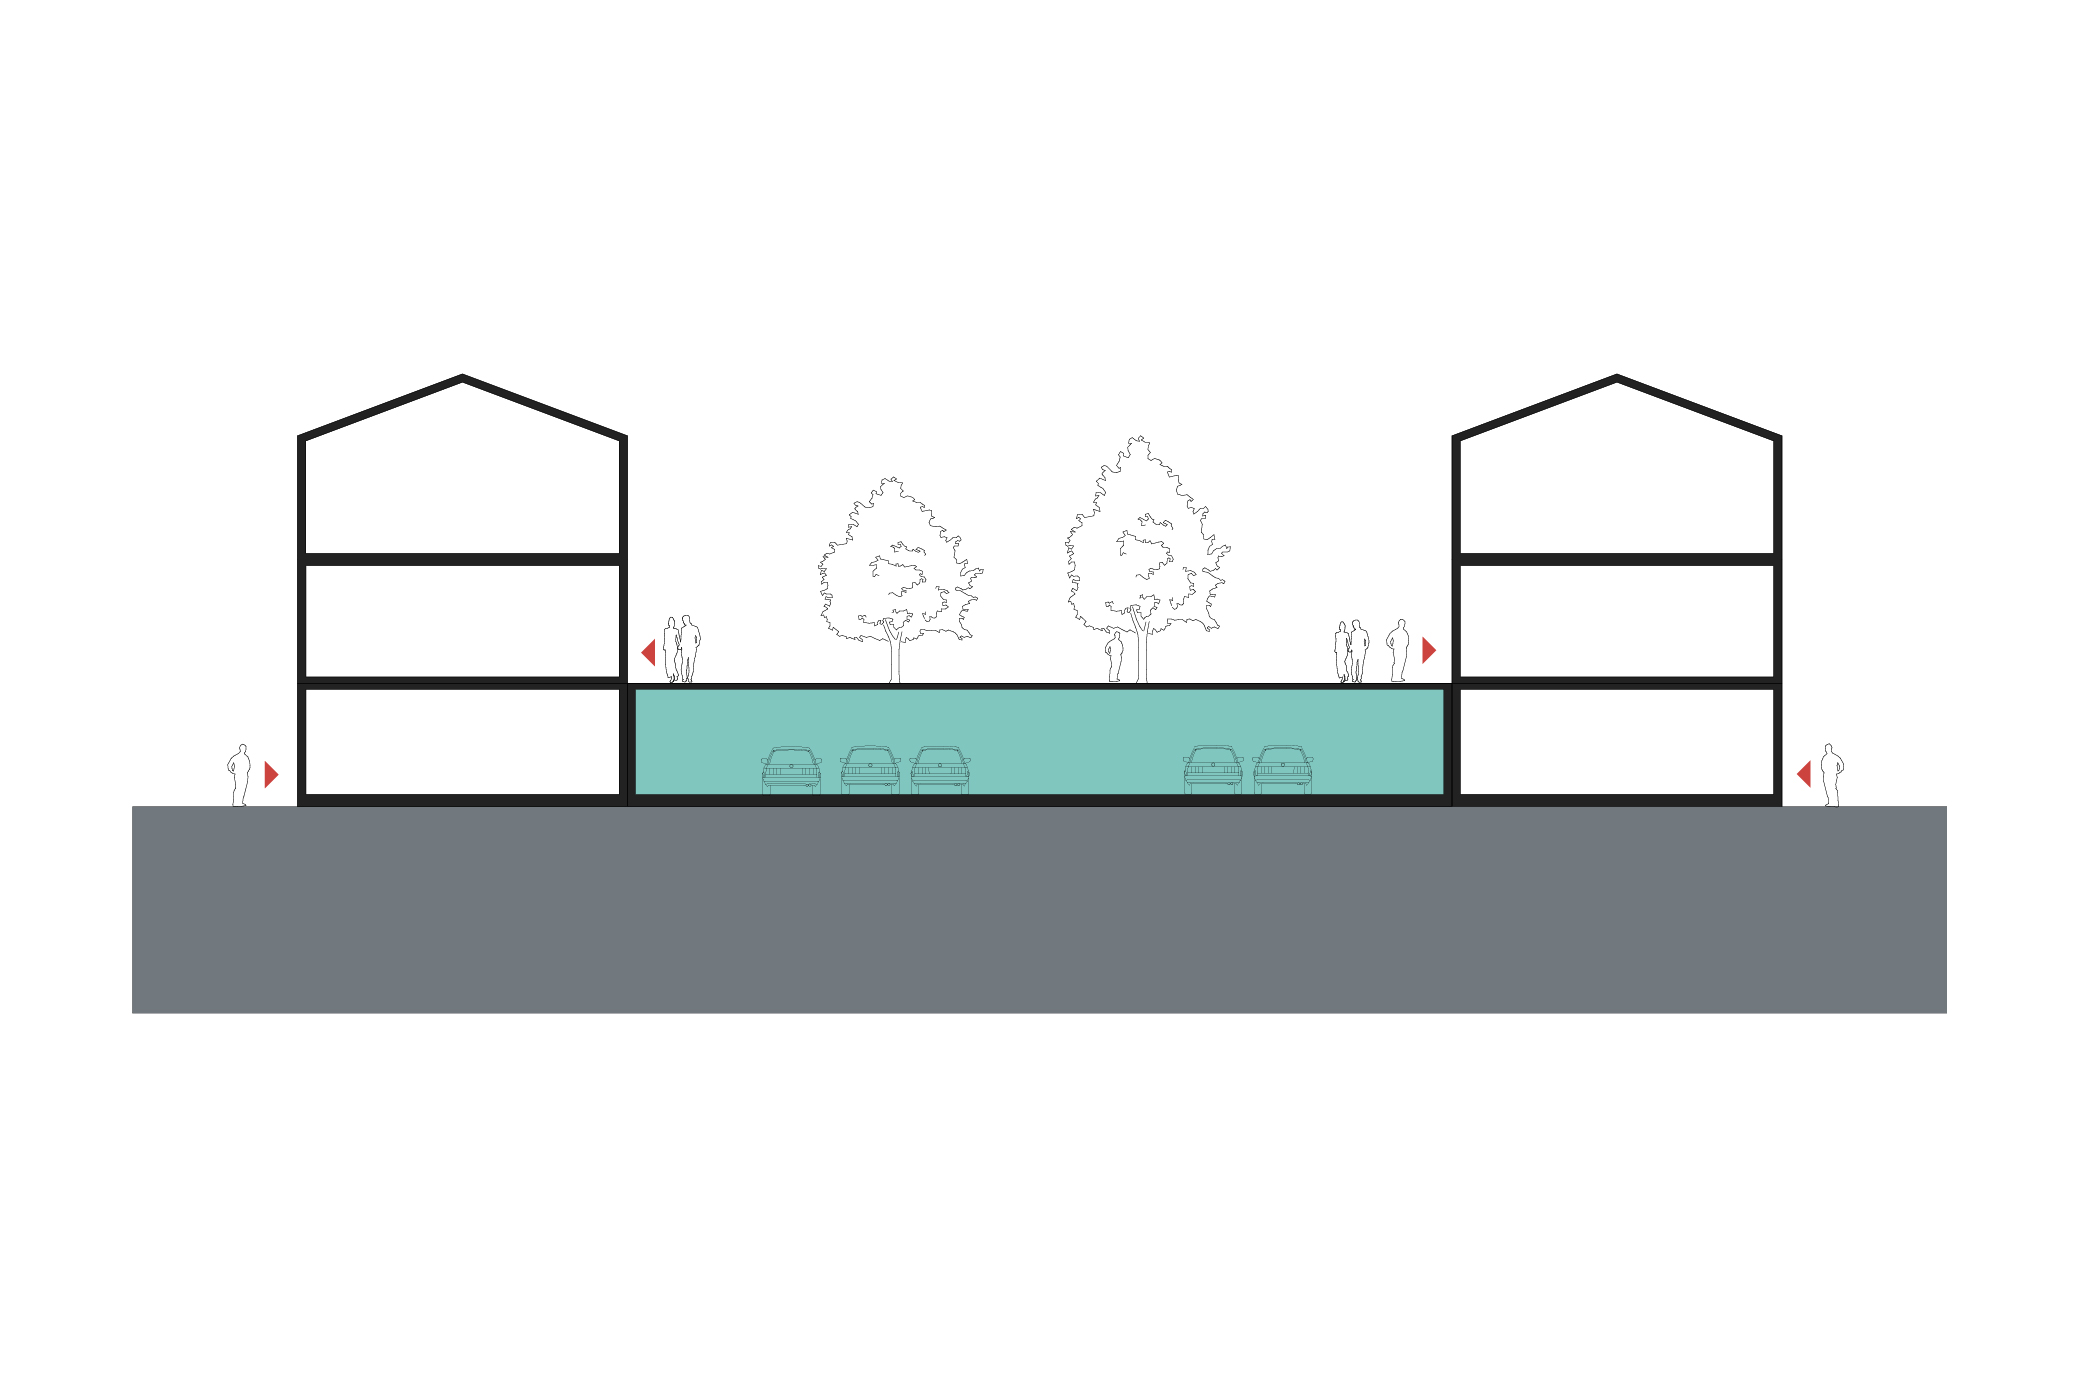 Design of basement car parking - Parking Grouped Between The Buildings In A Podium Arrangement With Either Communal Or Private Open Spaces Above It